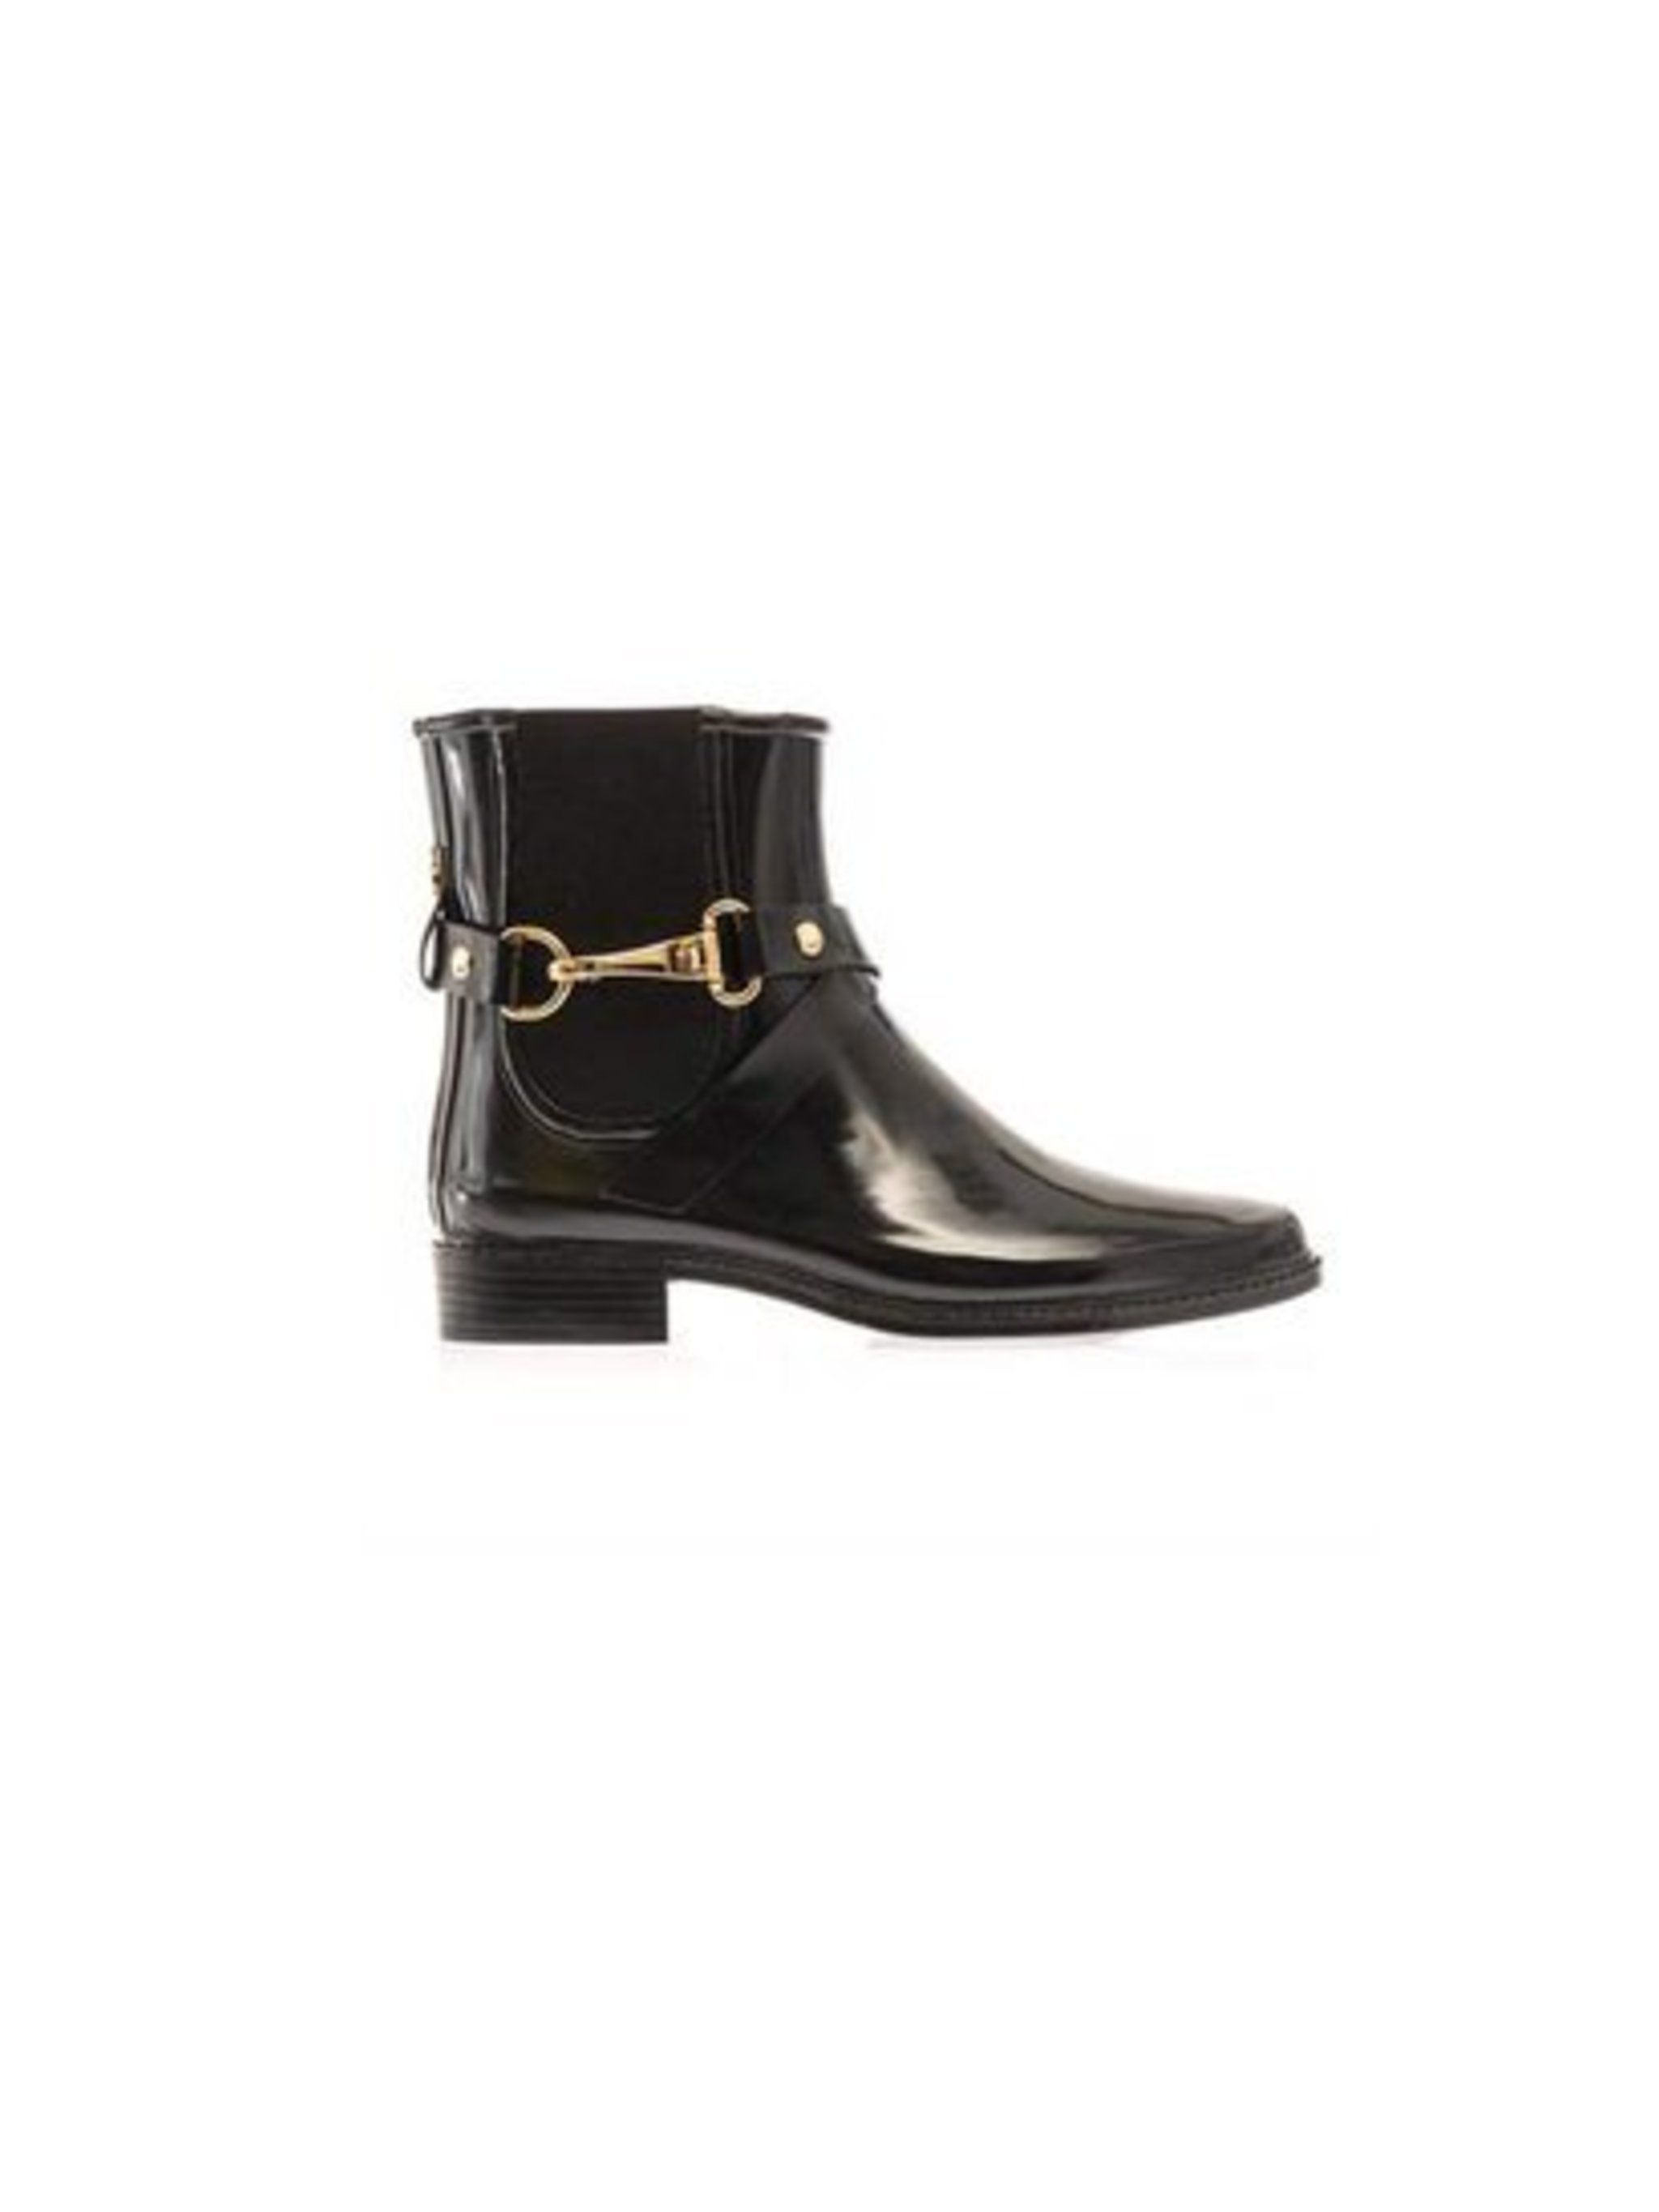 A pair of Wellington boots was never as stylish as these Burberry Brit booties, perfect for the festival season  Burberry Brit, £250 available at Matches